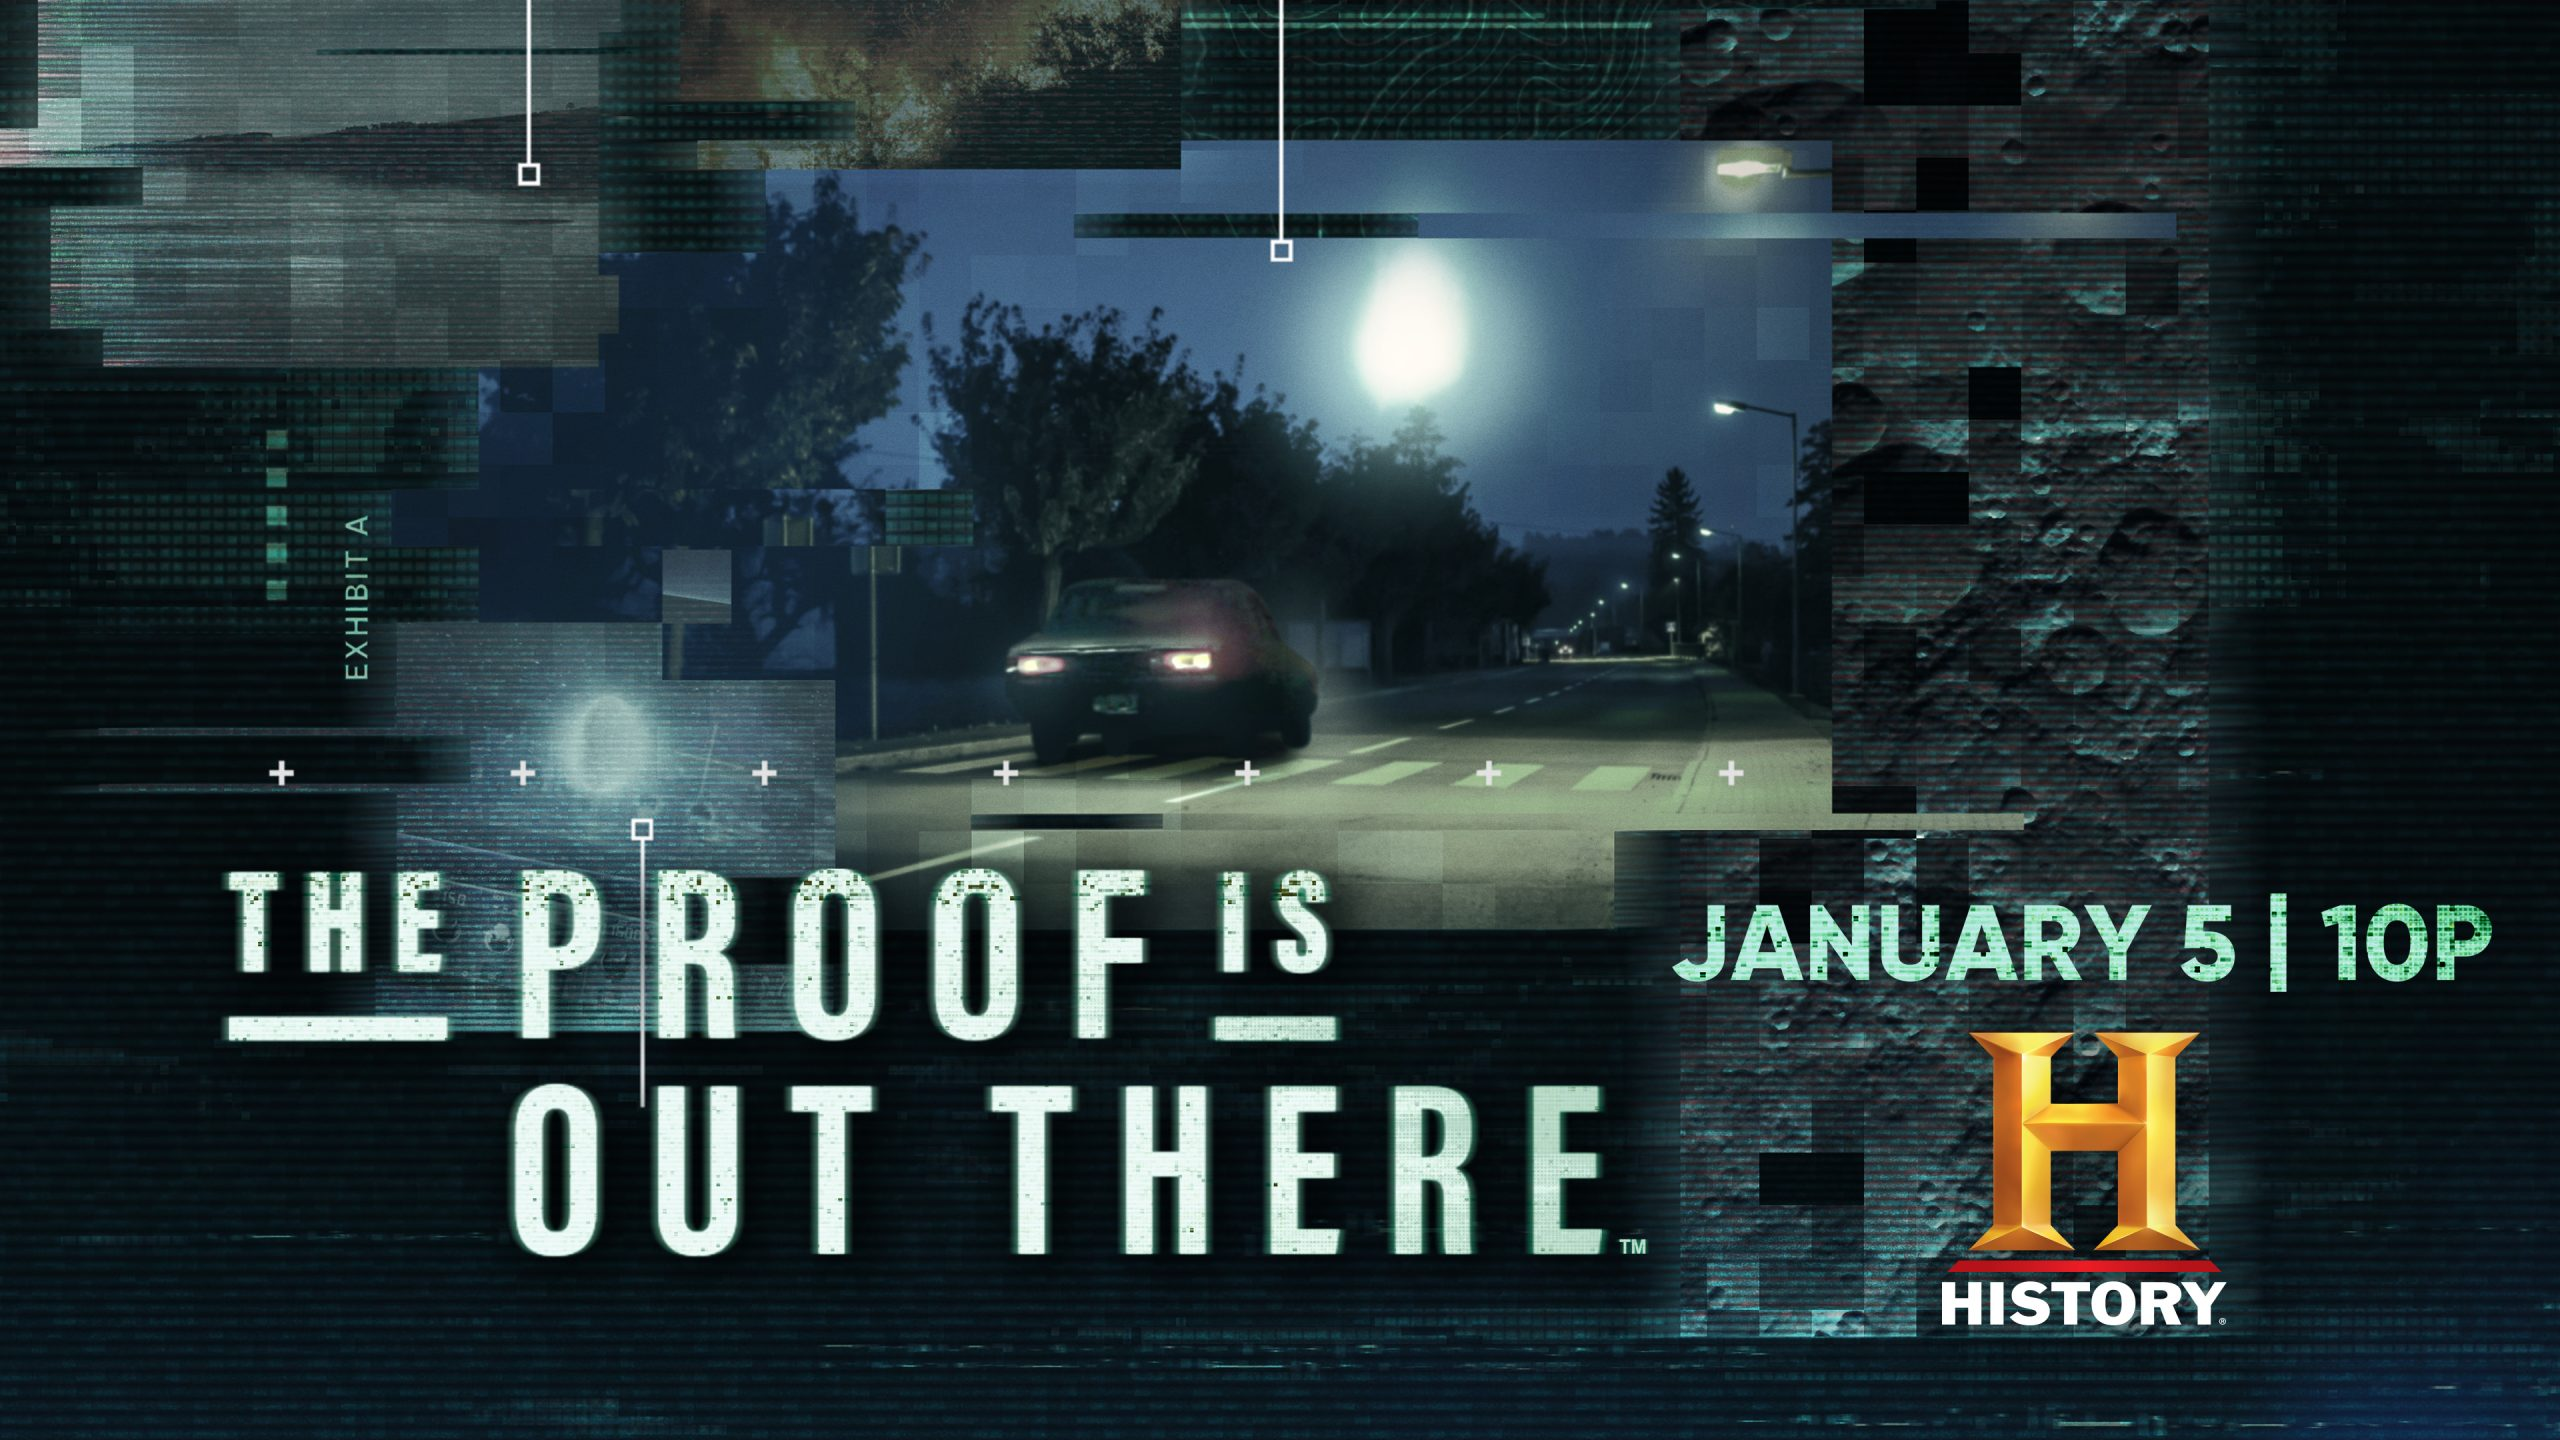 Proof_Is_Out_There_3840x2160_Premiere_FIN (1)